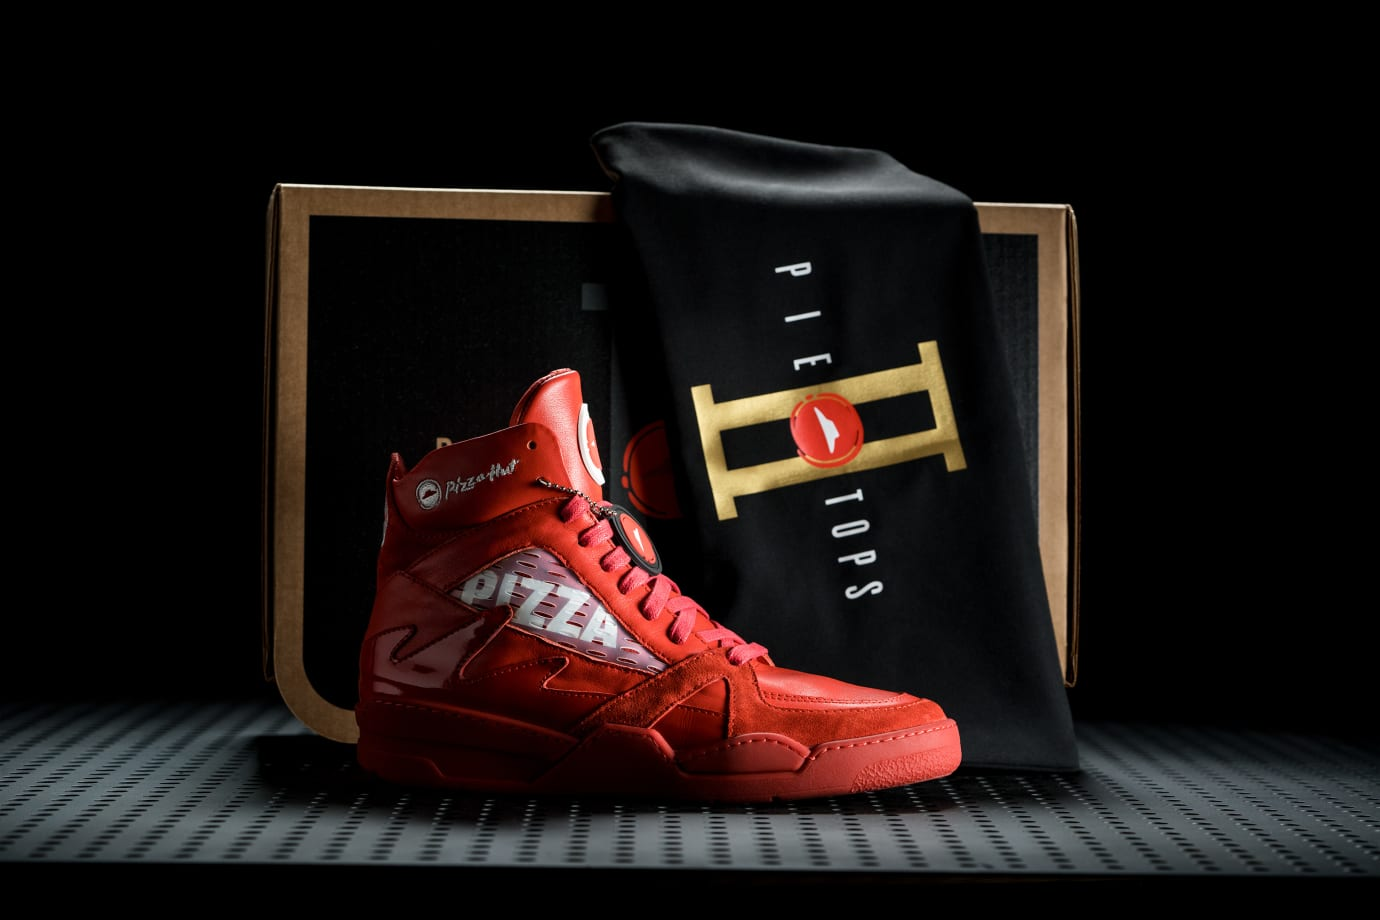 Pizza Hut Pie Top II Sneaker 1